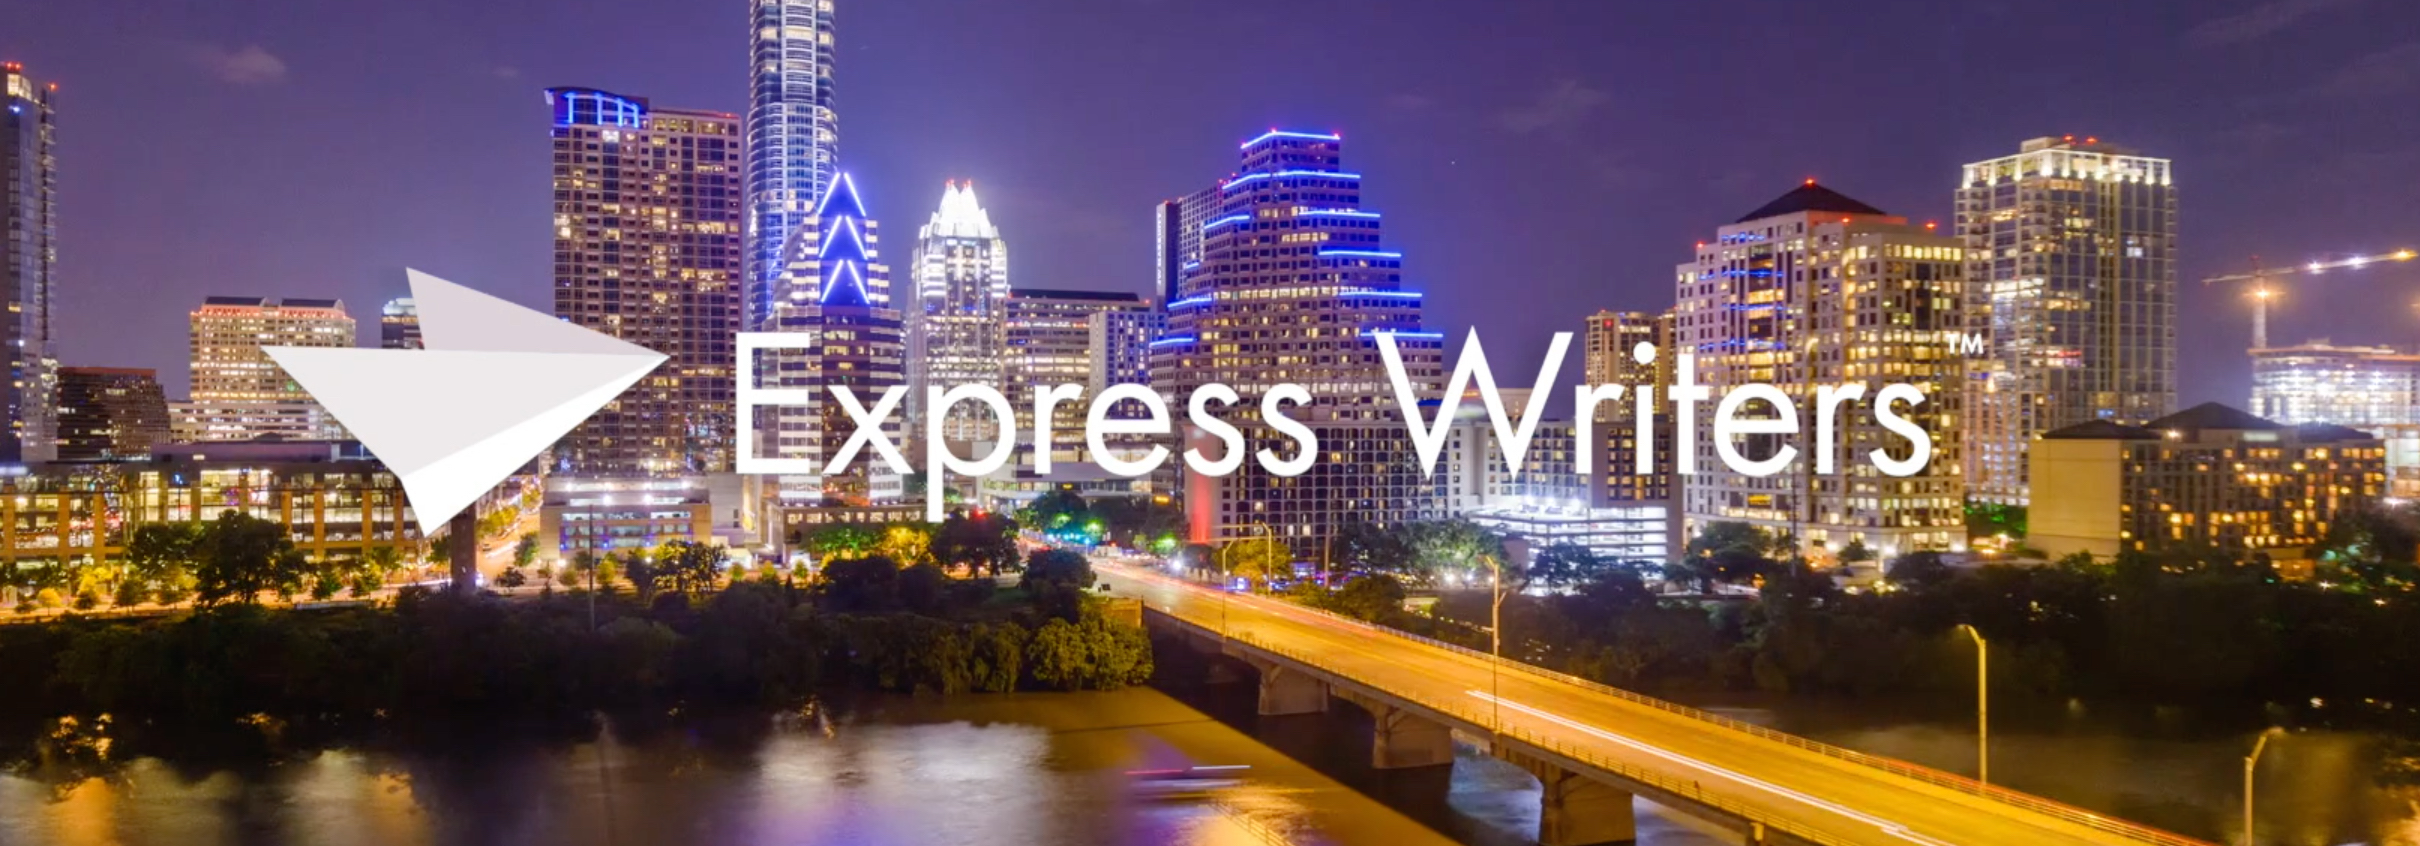 express writers 7 years in business